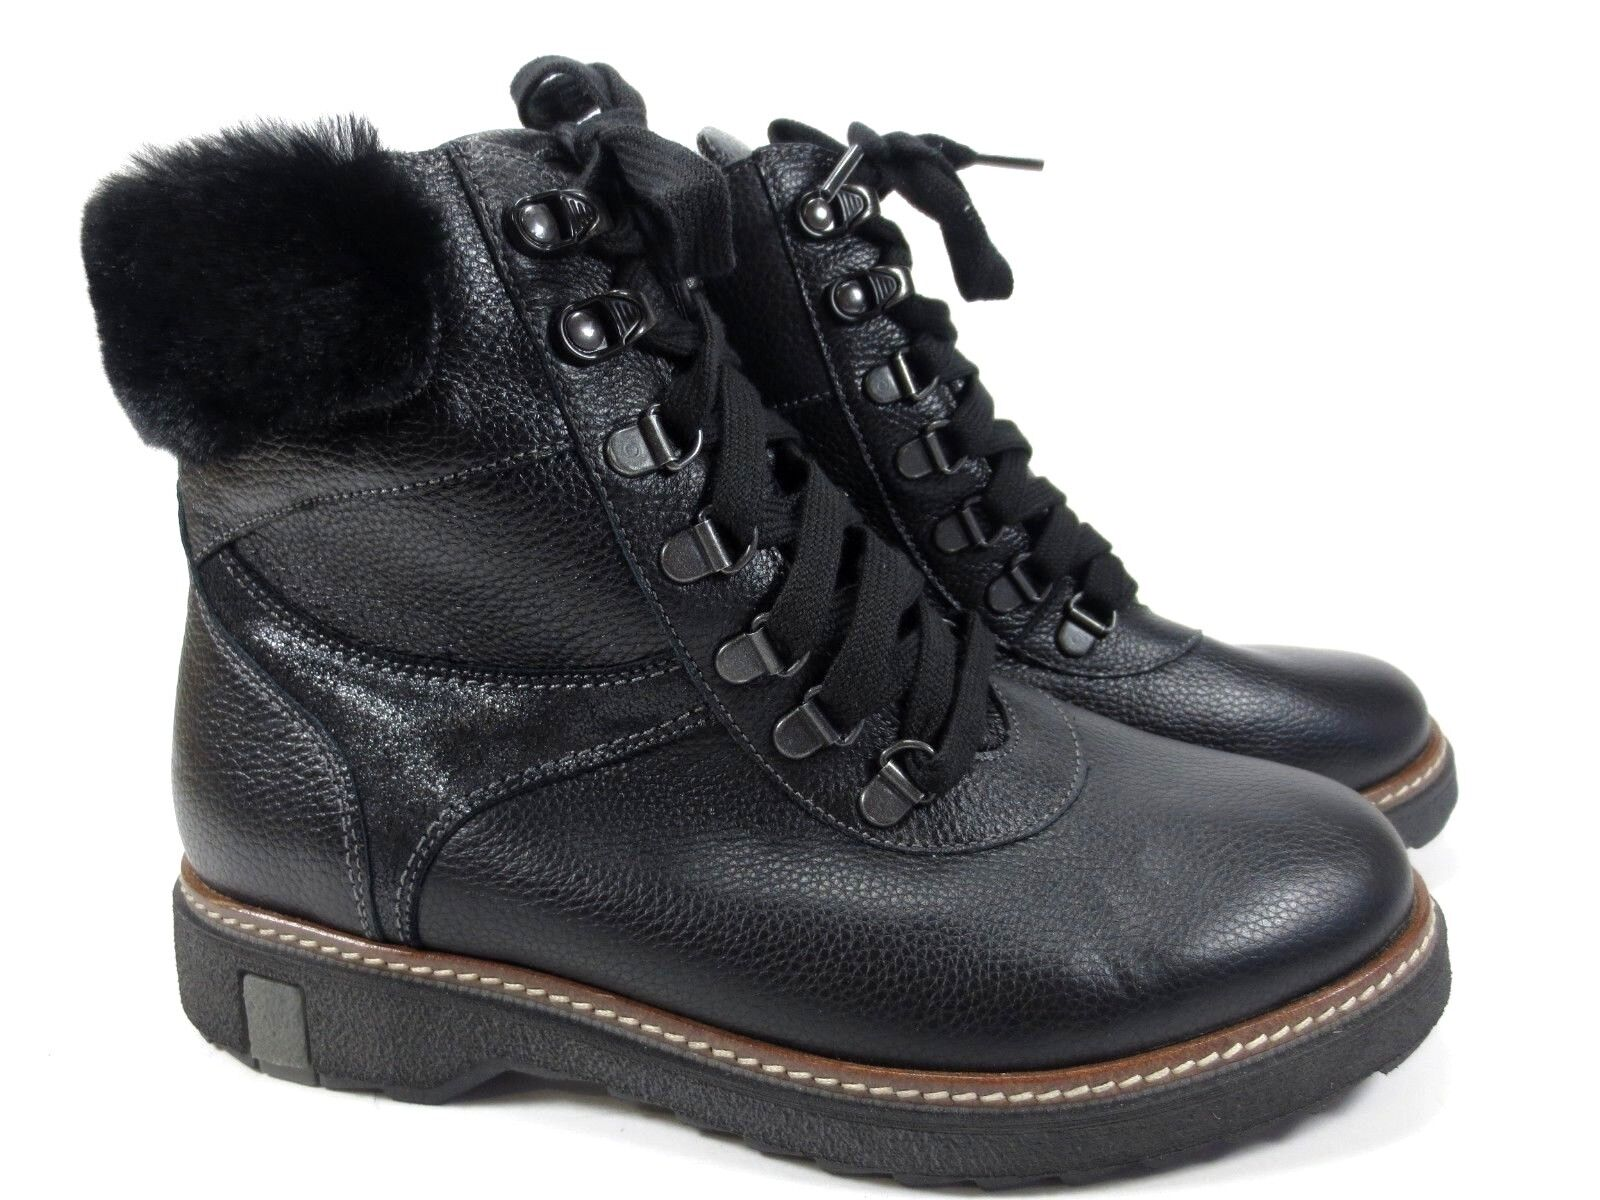 R?deur Hitomi Chaussures Chaussures Chaussures en Cuir Bottines Boots Taille 37,5 H 232 56b1e2